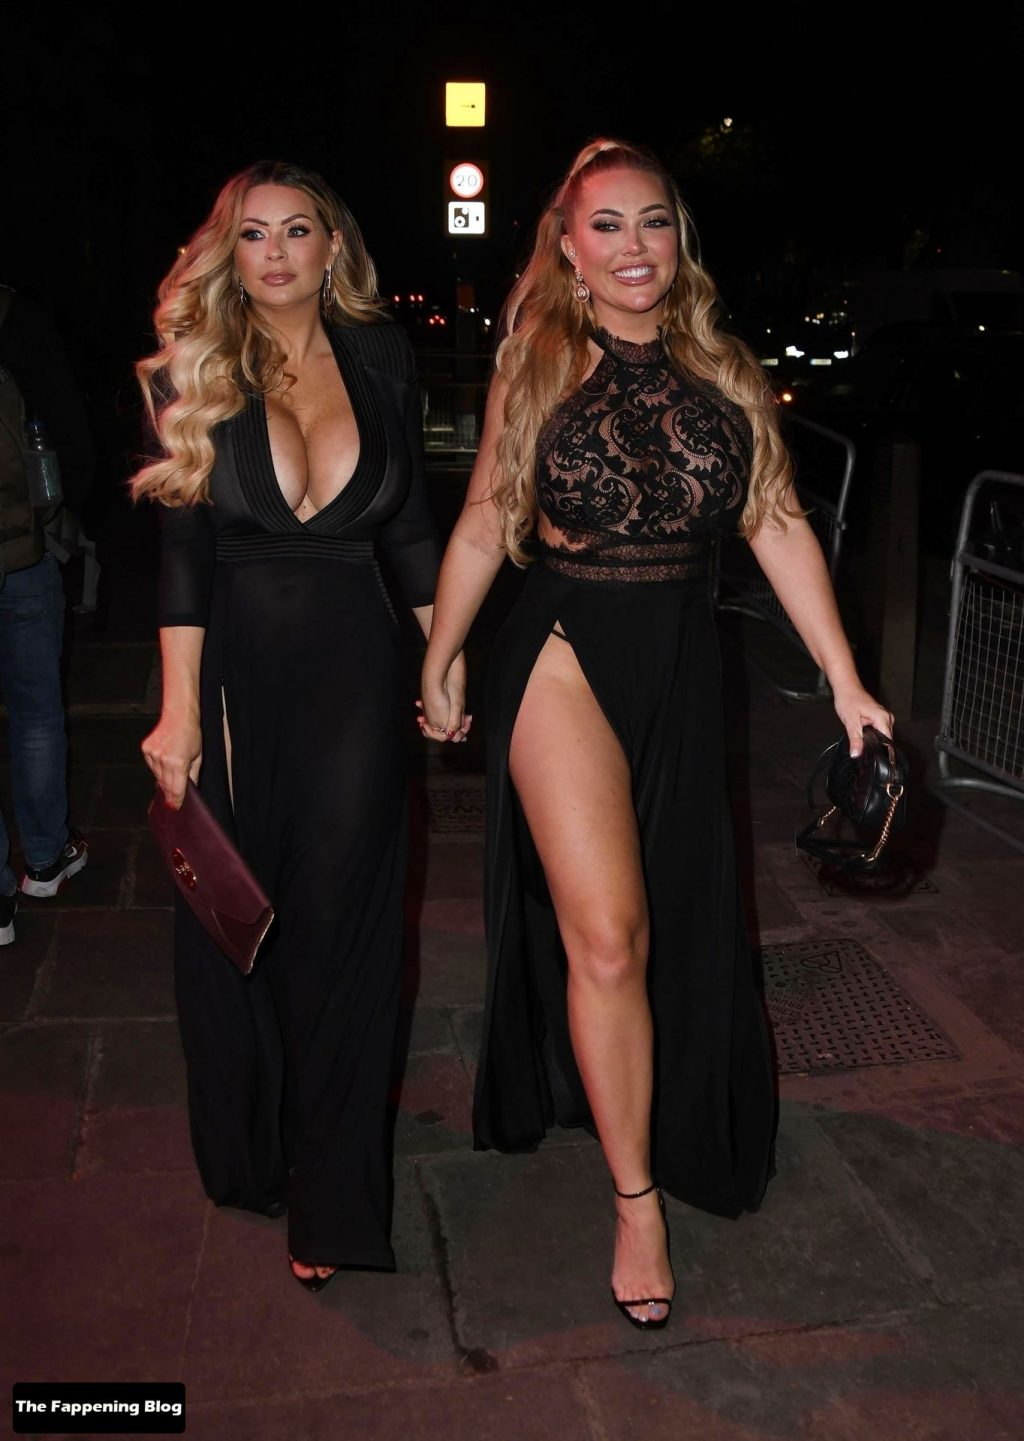 Aisleyne Horgan-Wallace Shows Off Her Butt at the The PINK Event (15 Photos)